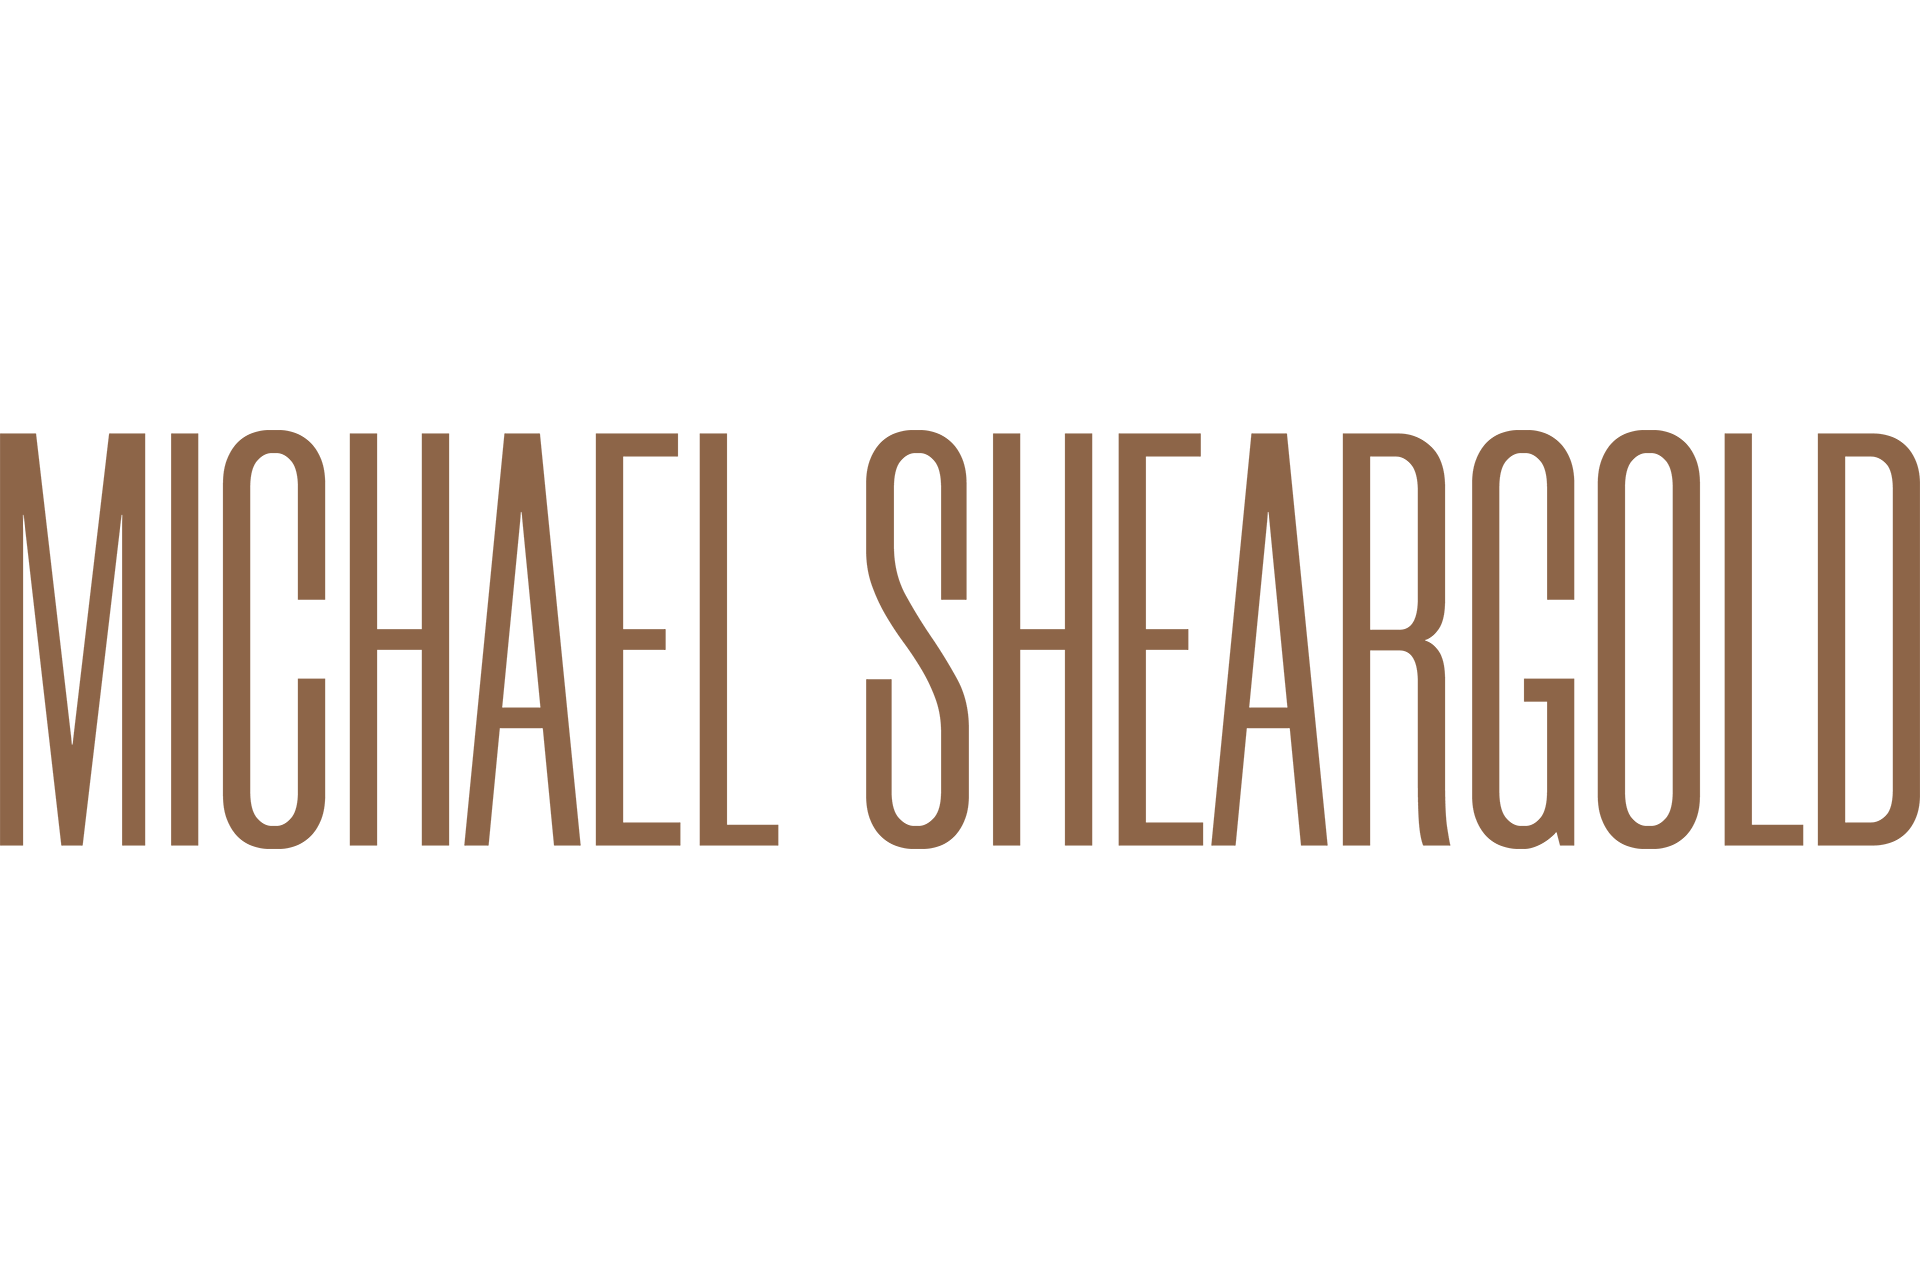 Michael Sheargold